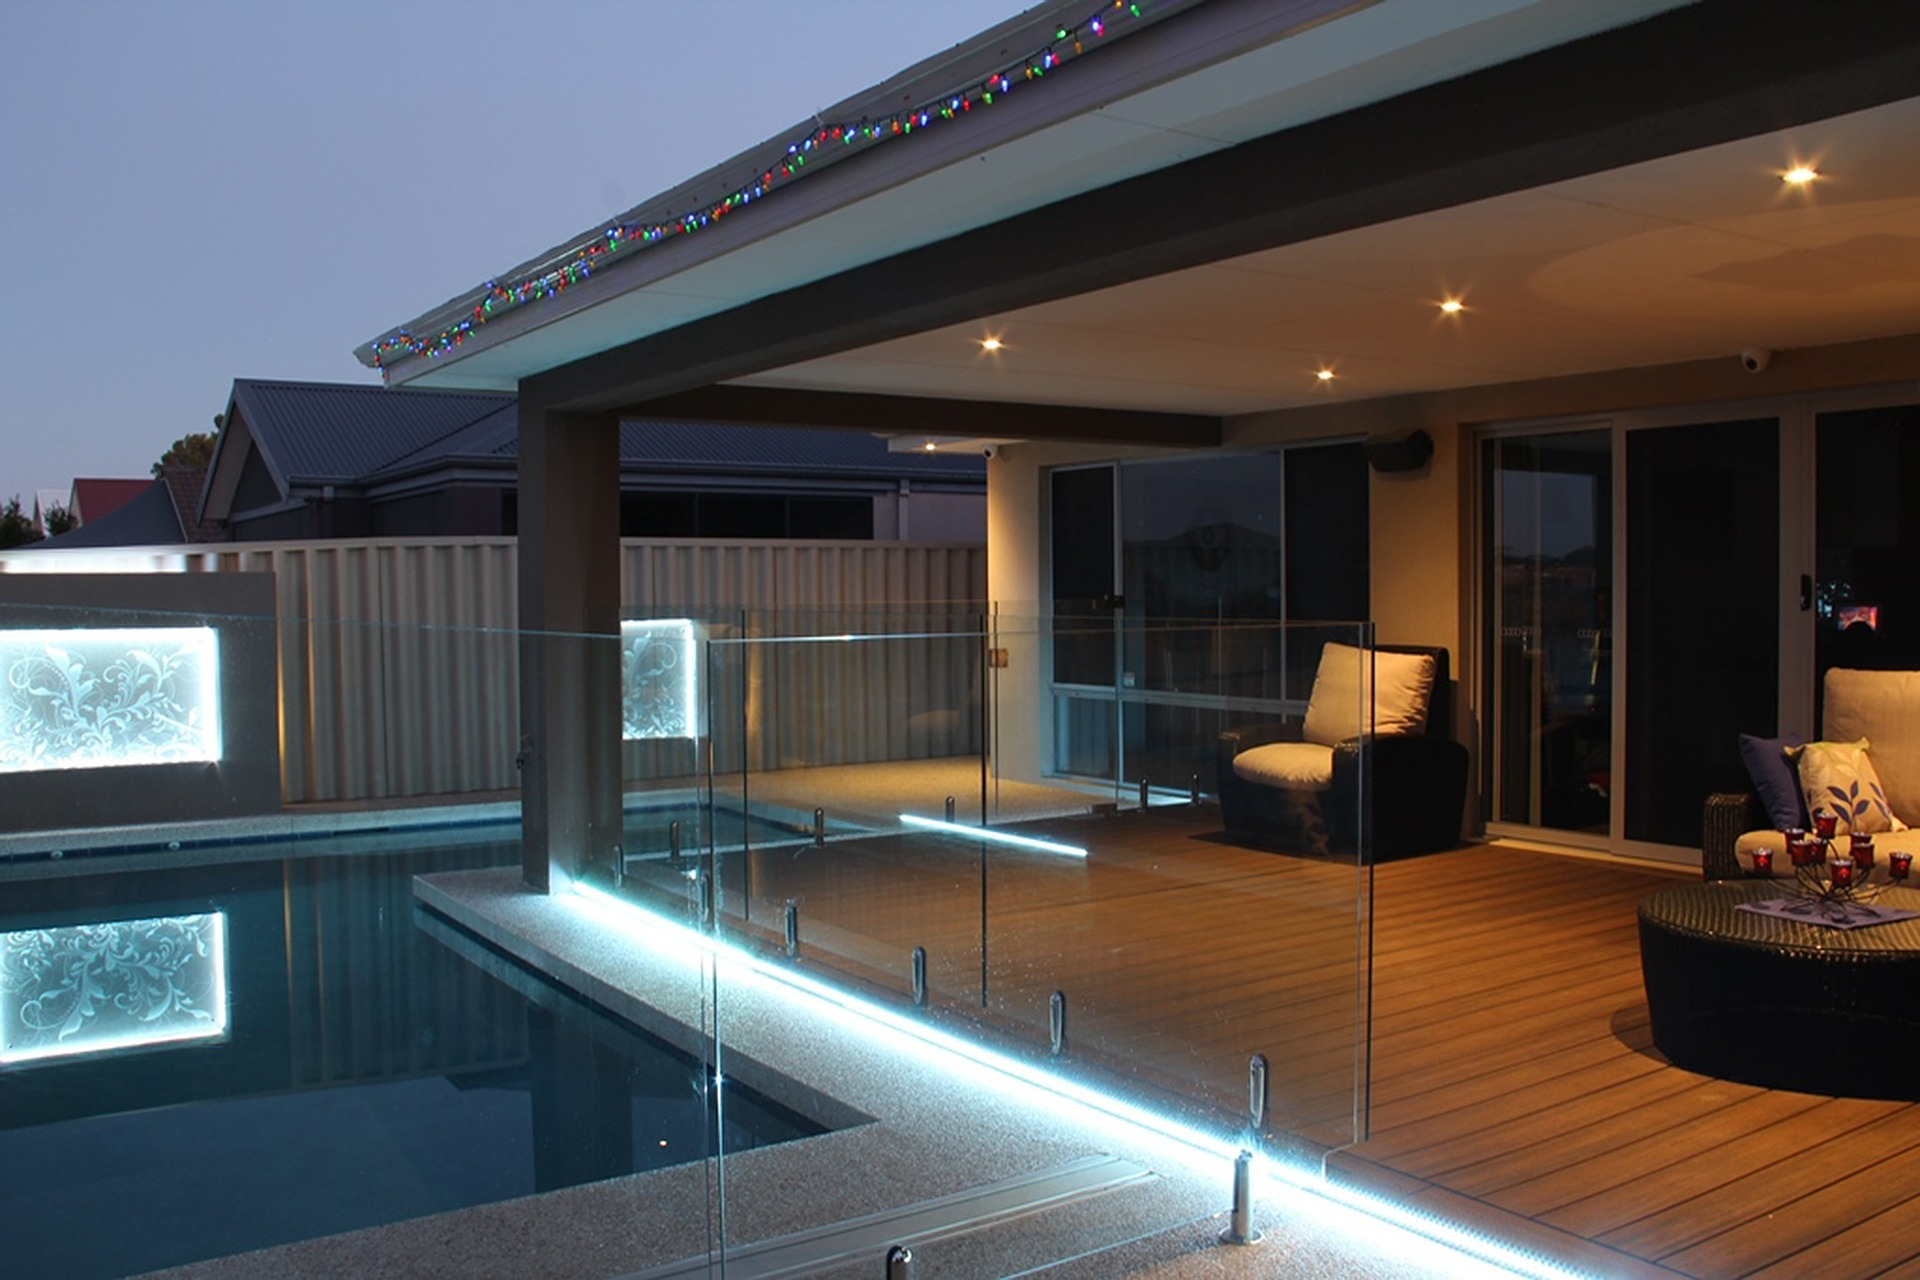 The Spa and Pool Automation and Lighting Feature Image